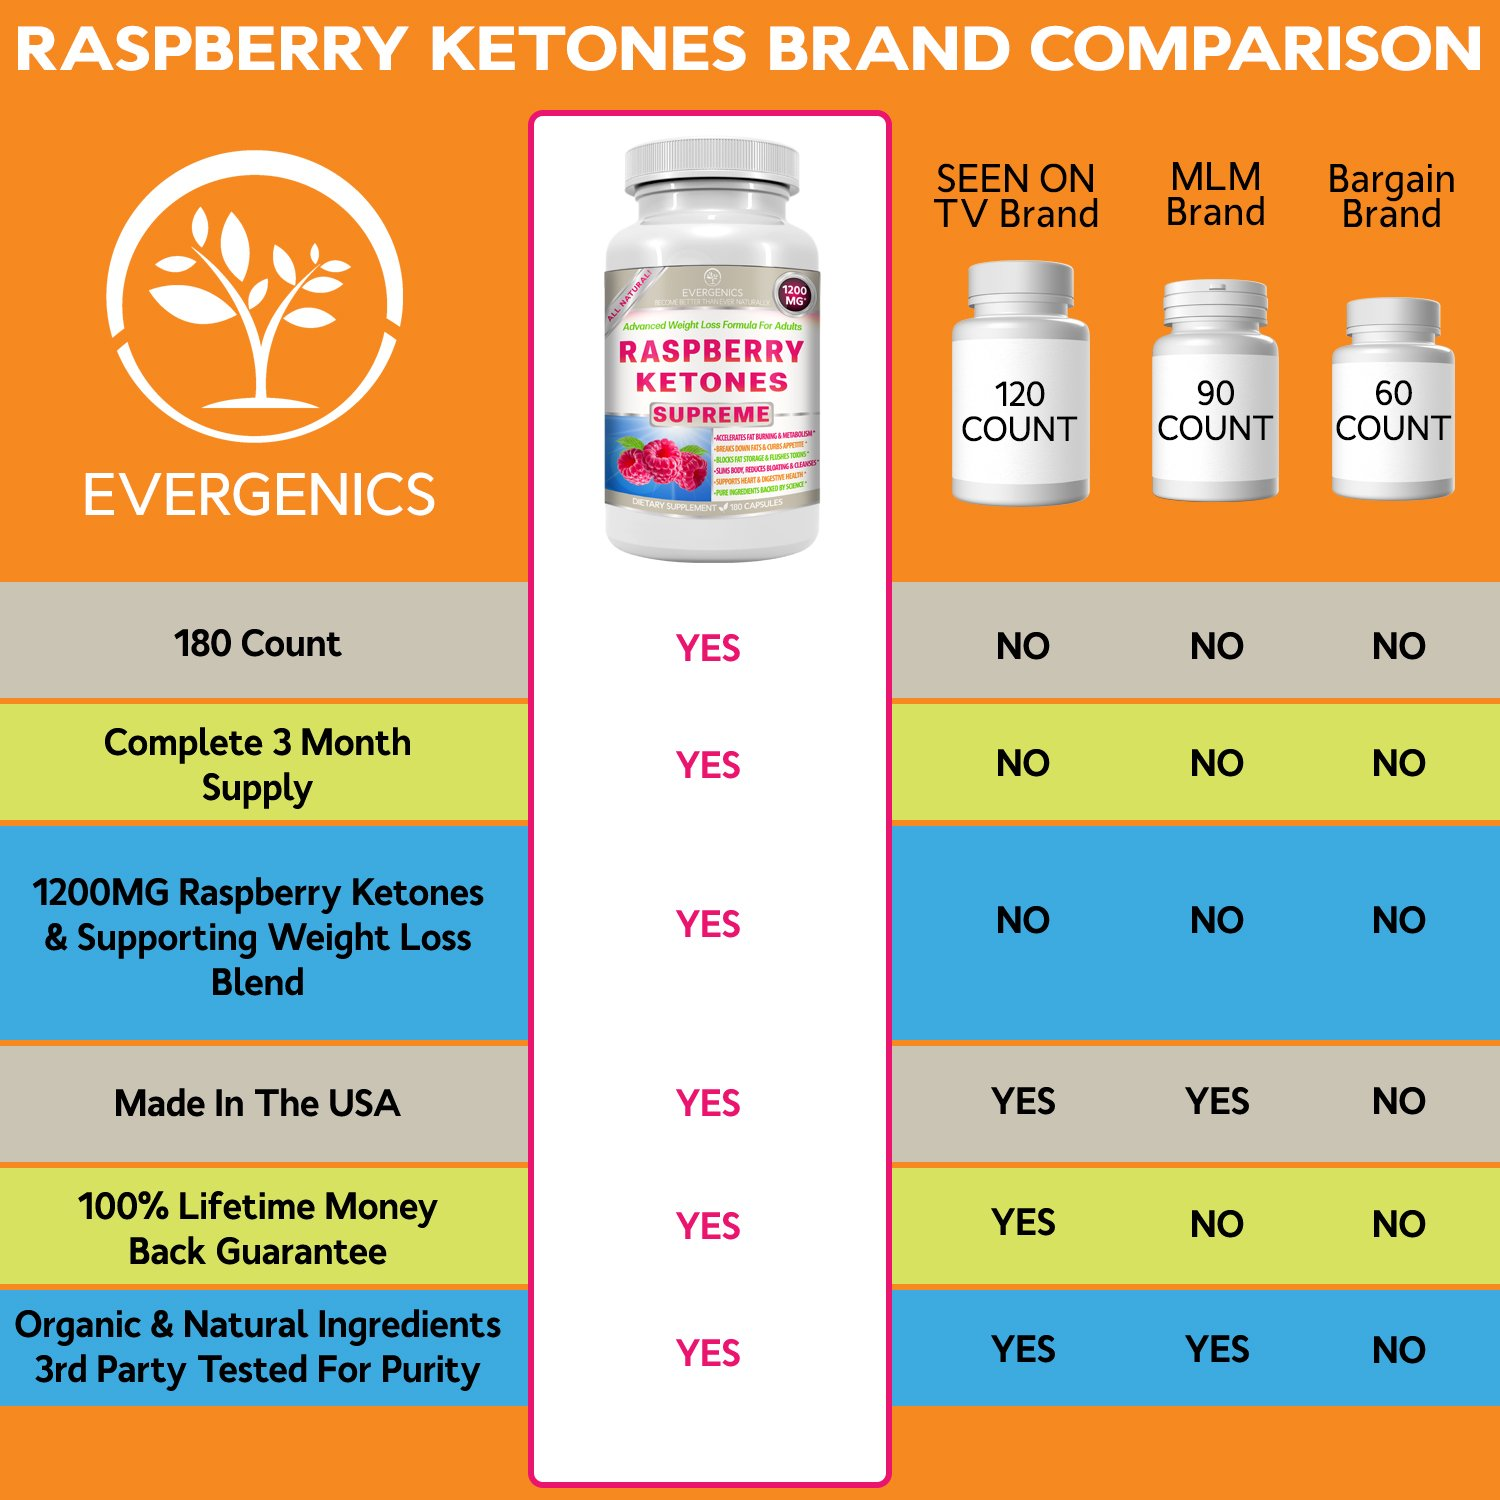 Raspberry Ketones Supreme Weight Loss & Slimming Formula for Adults. 1200mg Per Day. 180 All-Natural Capsules with Premium, Pure & Organic Ingredients. by Evergenics Health and Personal Care (Image #6)